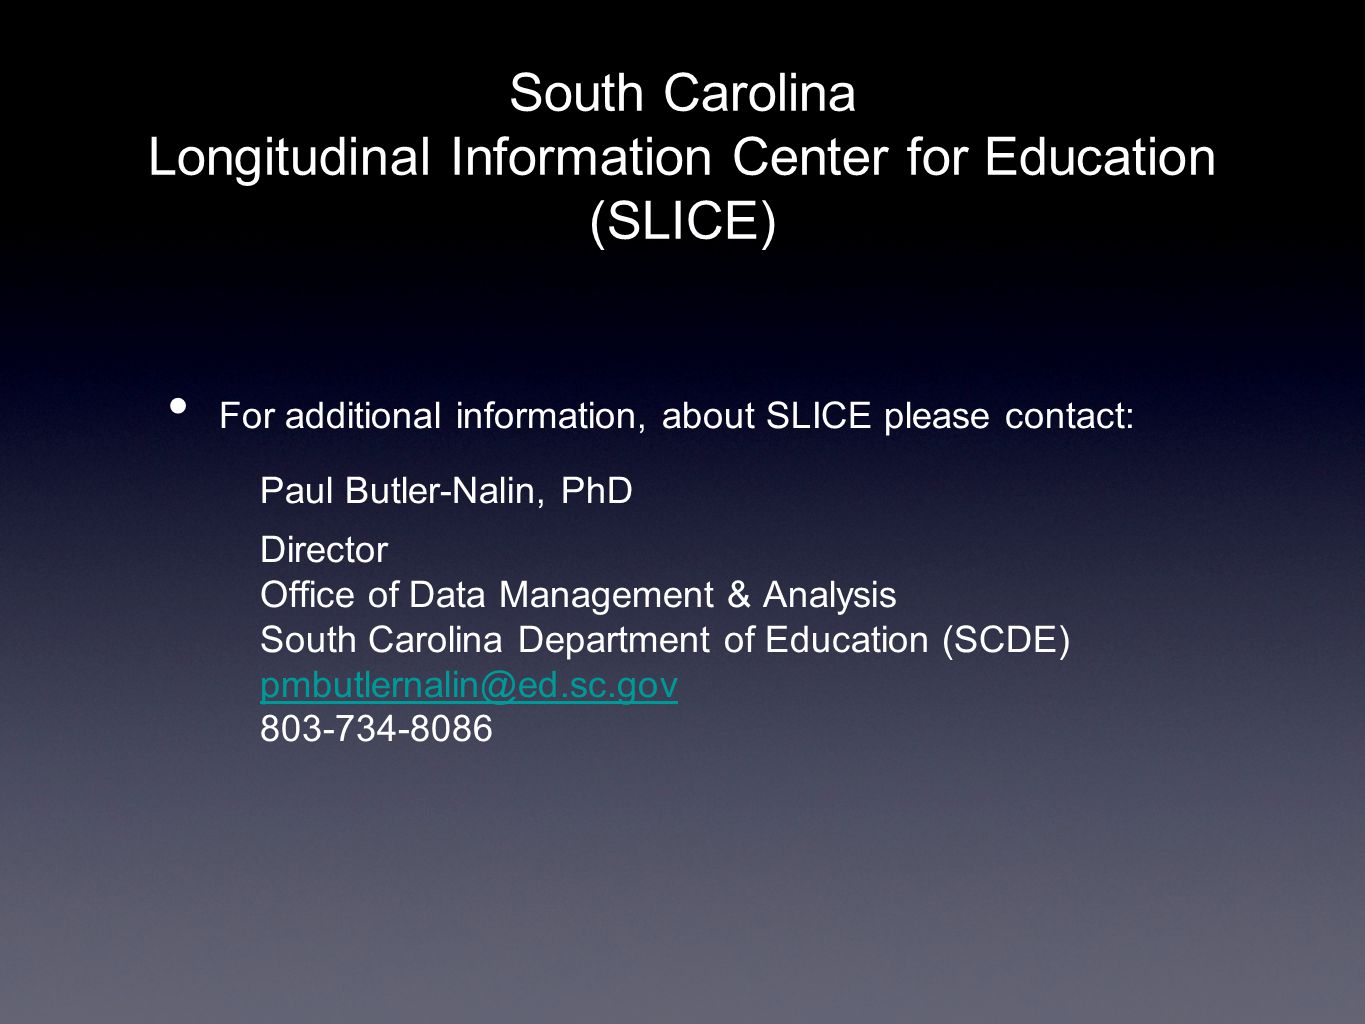 South Carolina Longitudinal Information Center for Education (SLICE) For additional information, about SLICE please contact: Paul Butler-Nalin, PhD Director Office of Data Management & Analysis South Carolina Department of Education (SCDE) pmbutlernalin@ed.sc.gov 803-734-8086